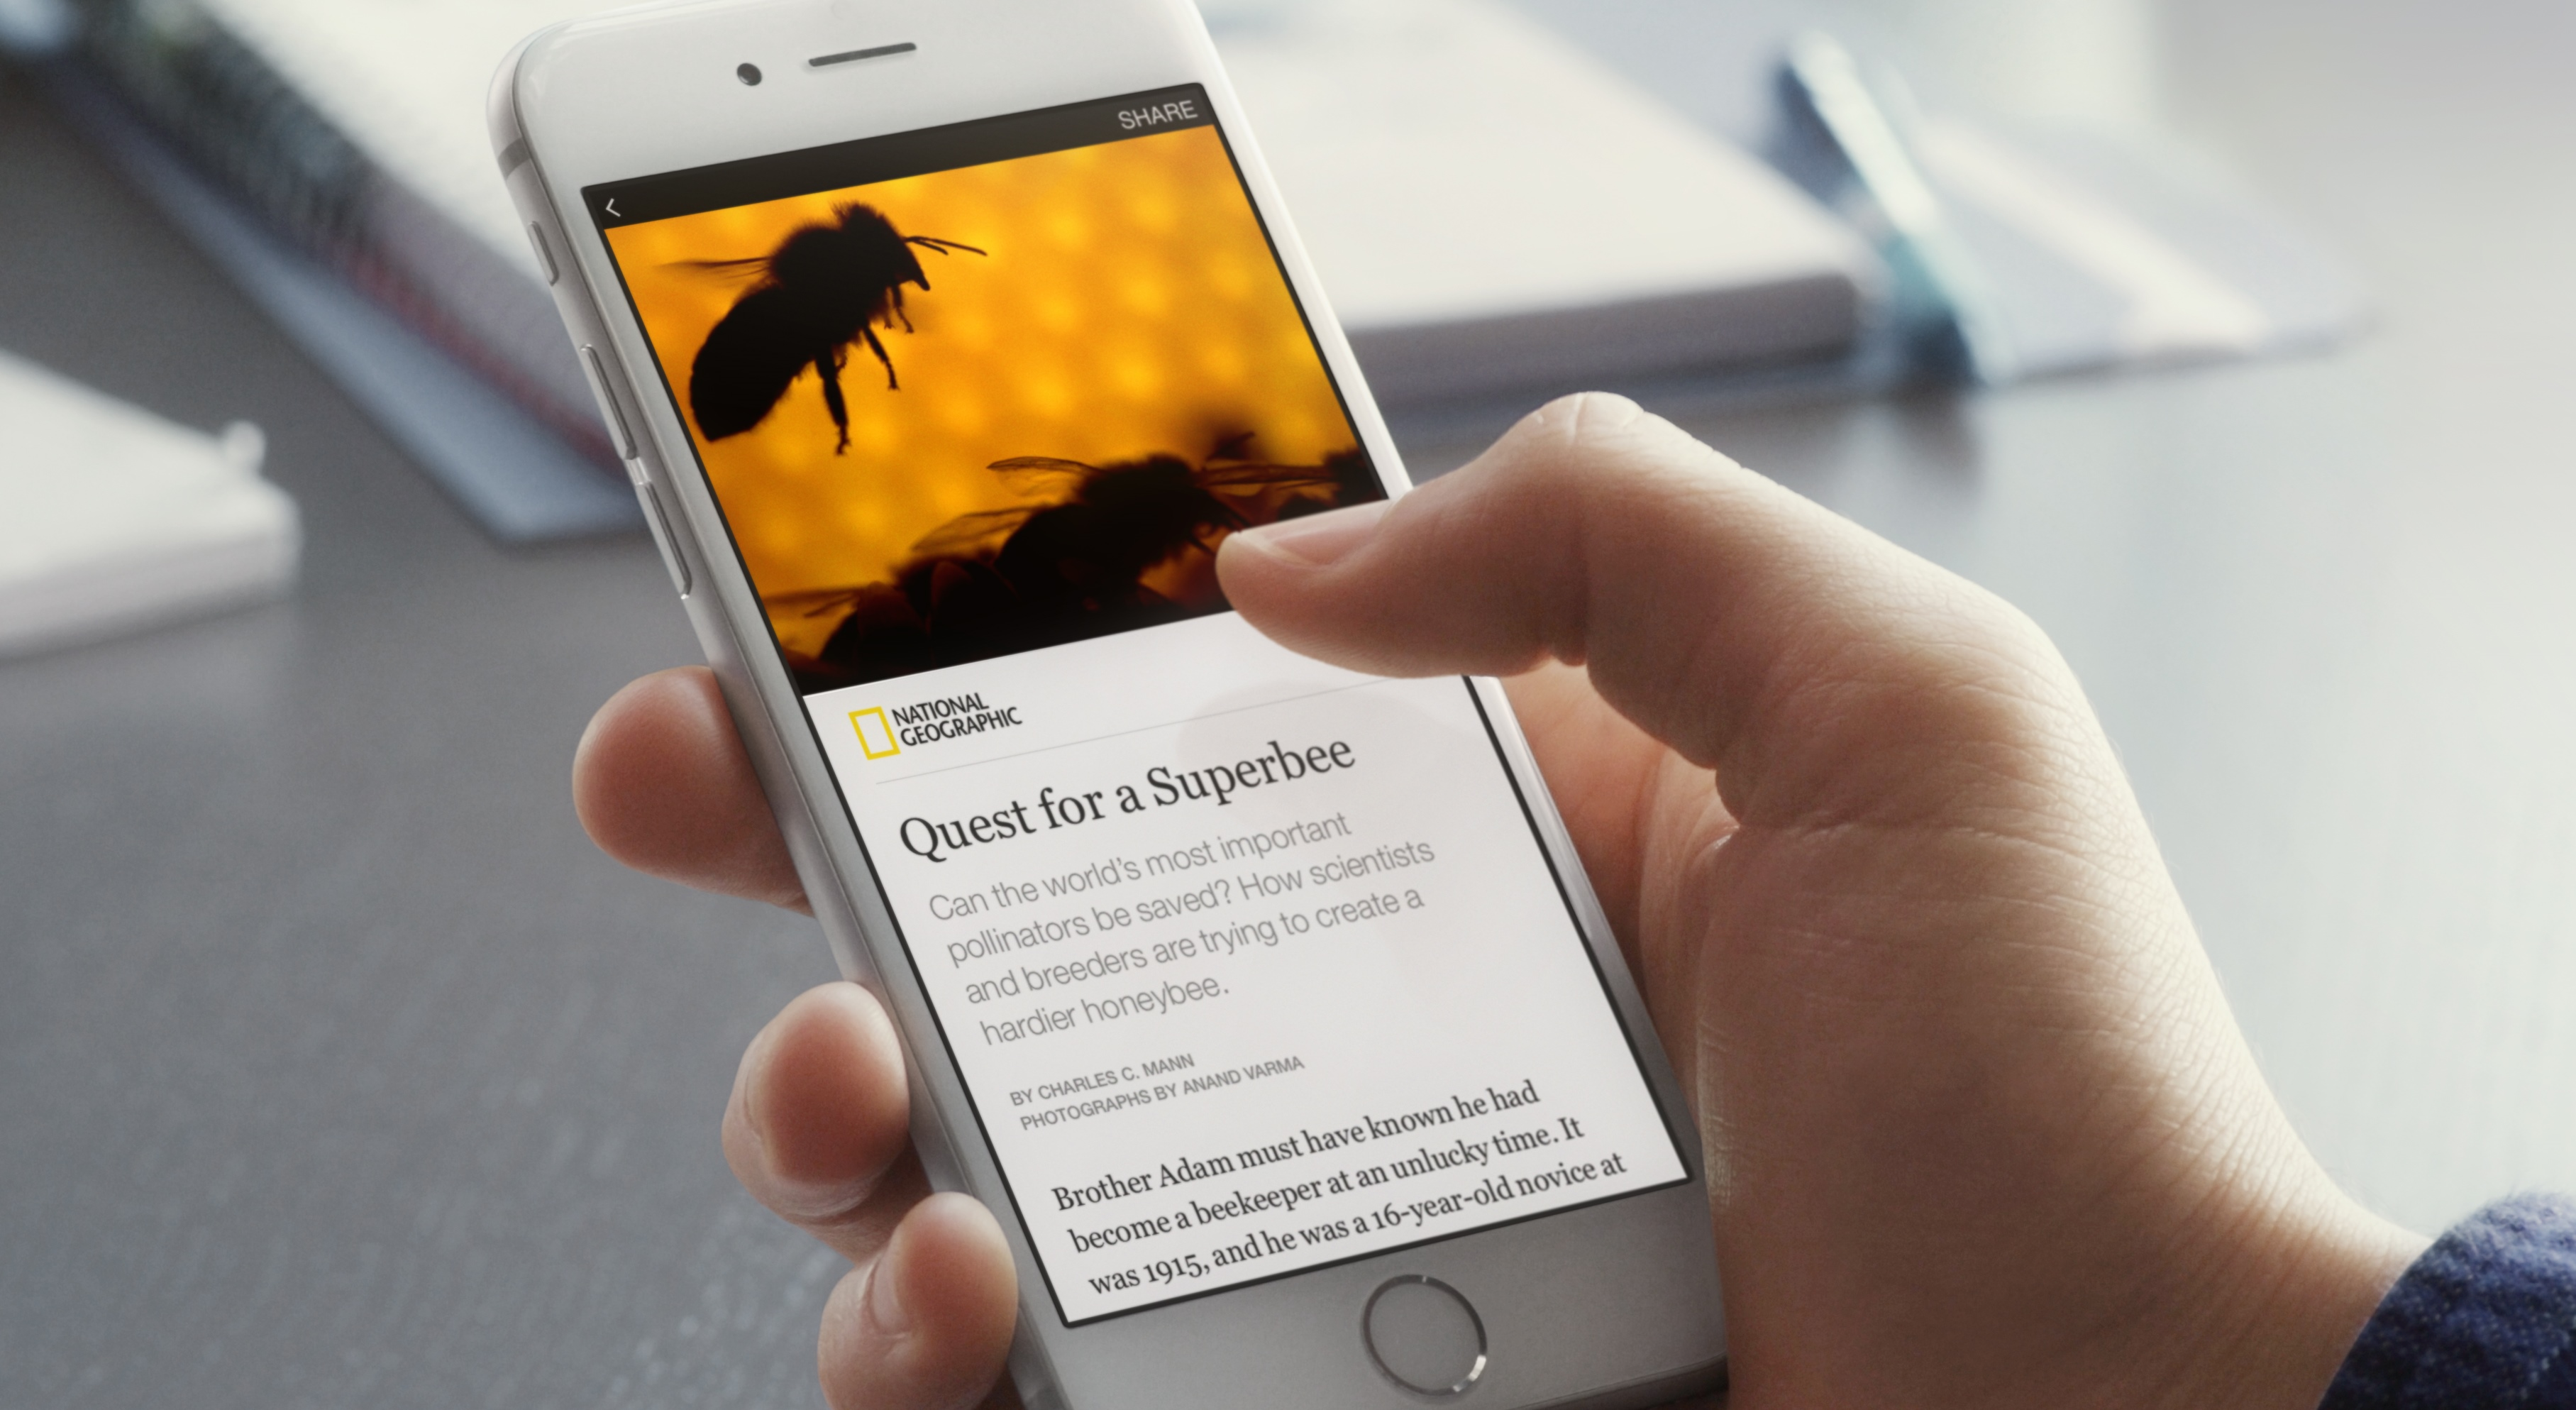 Facebook Brings Publishers' Content In-App with Instant Articles